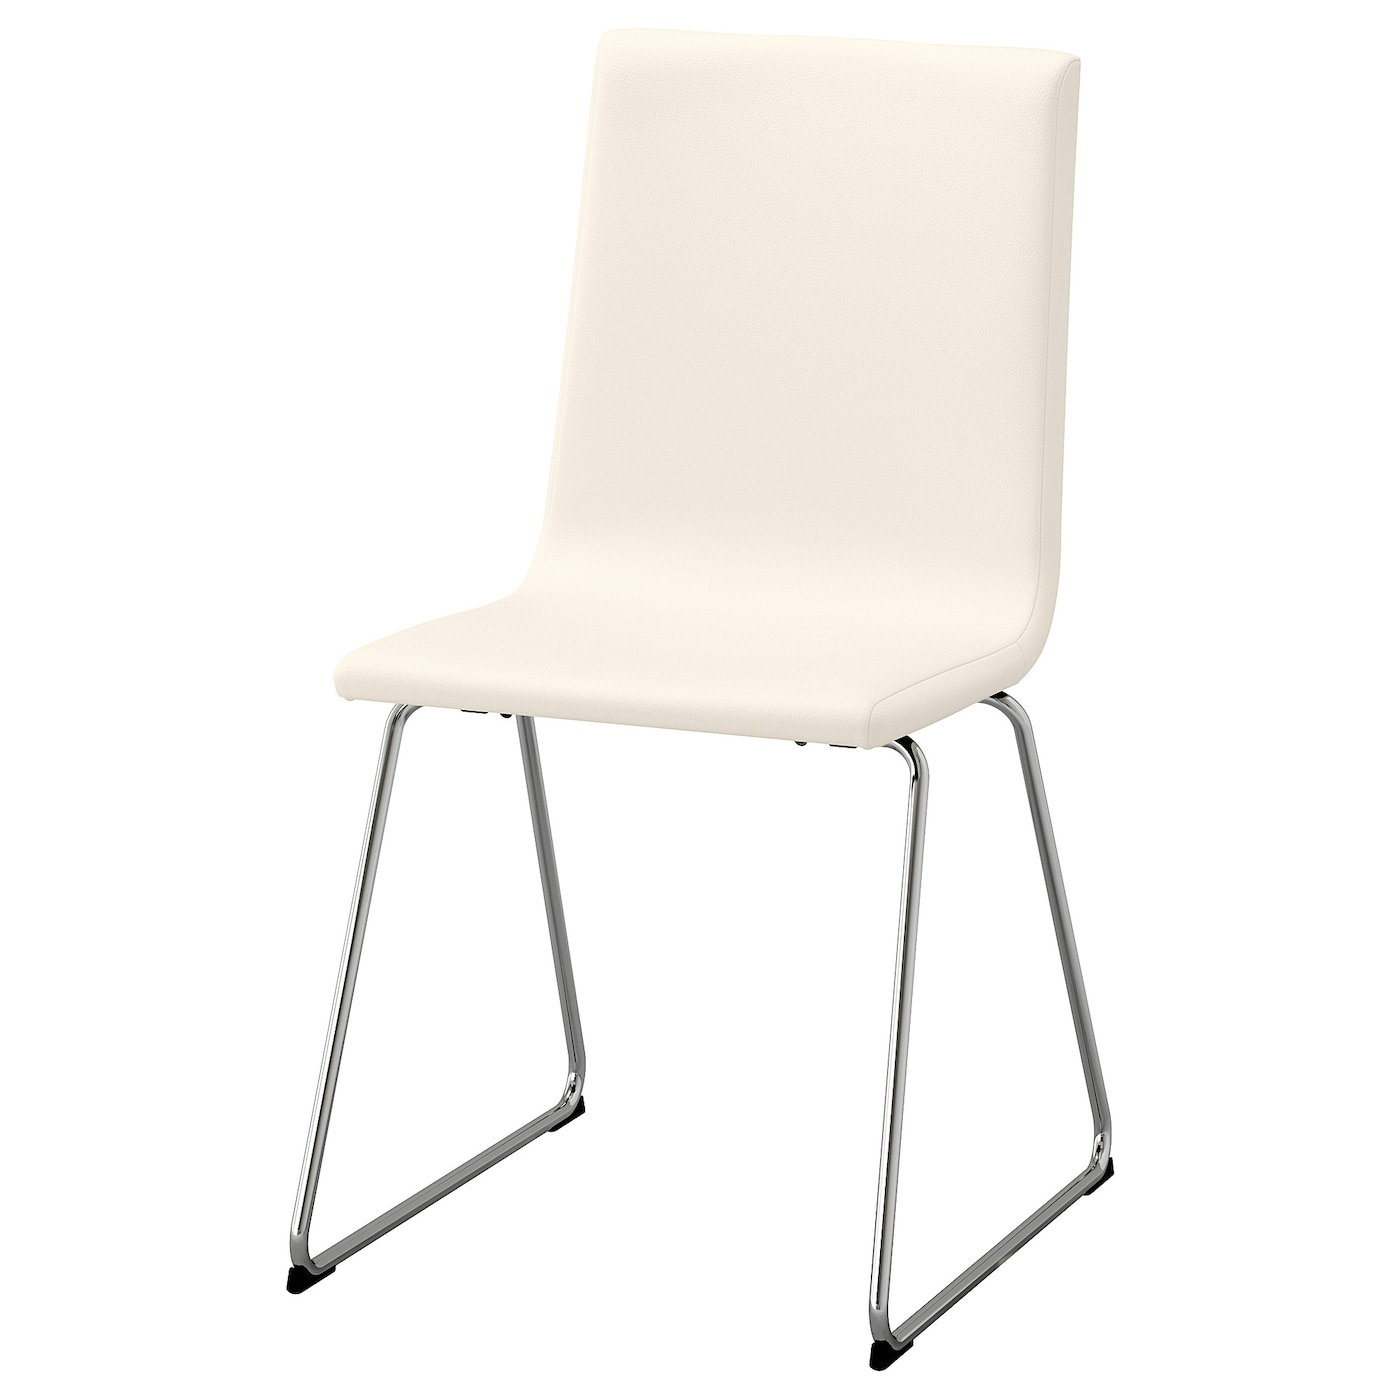 IKEA VOLFGANG chaise Le siège flexible offre un grand confort d'assise.